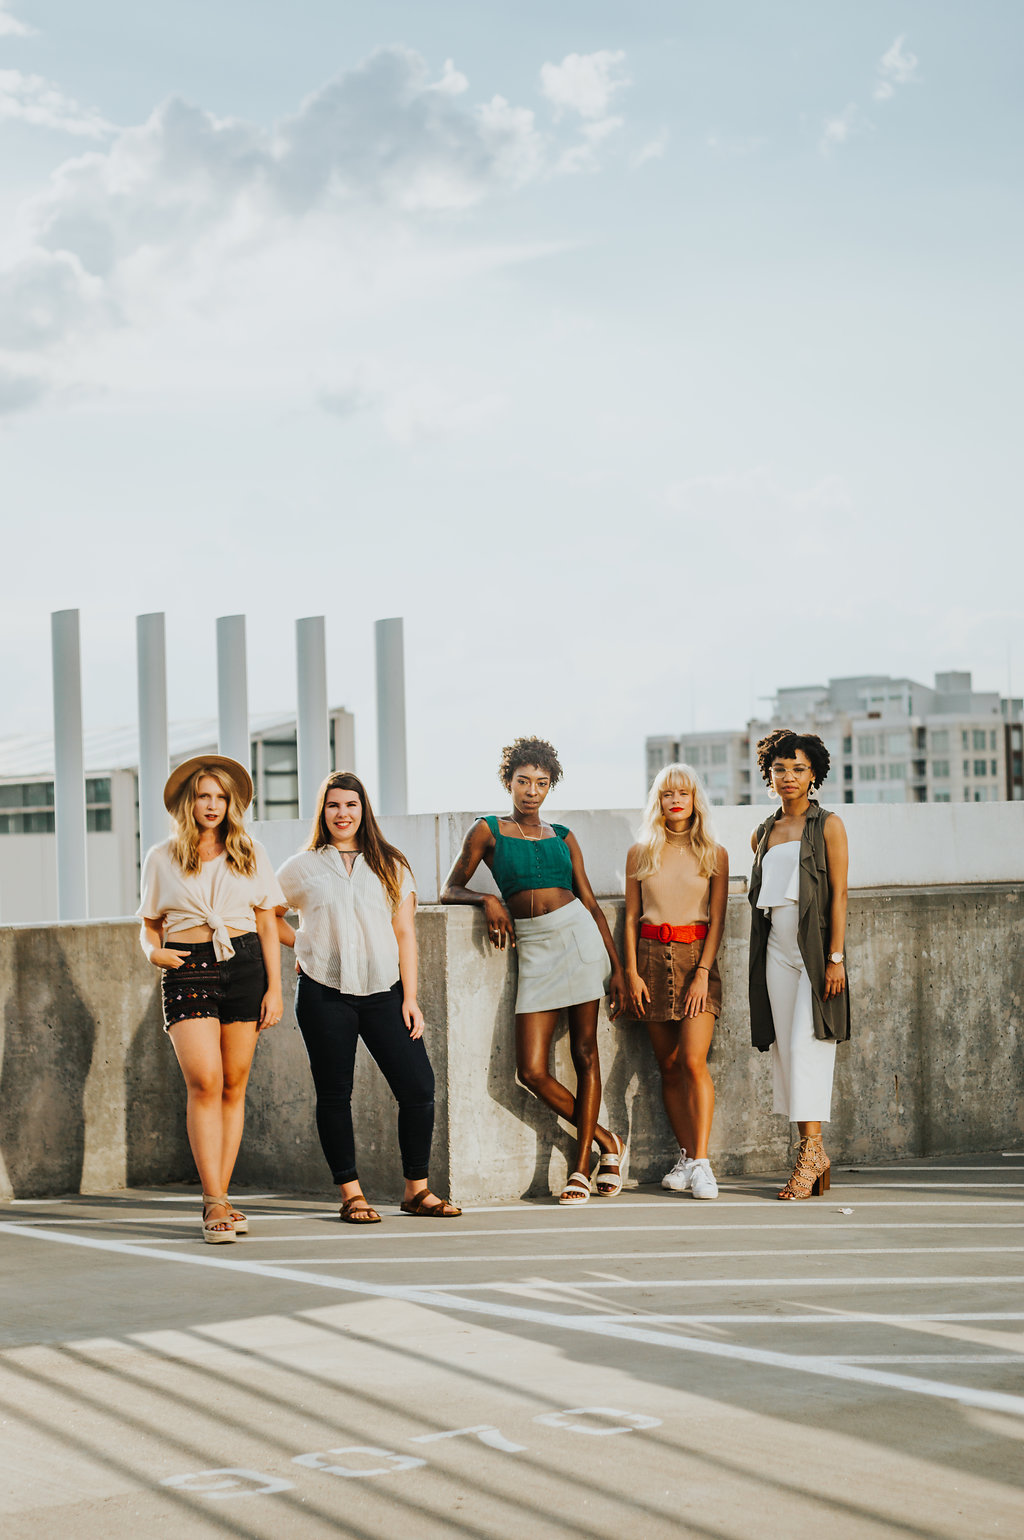 theauthenticwomancampaign-raleighnc-mikaylachristiansenphotography-50.jpg